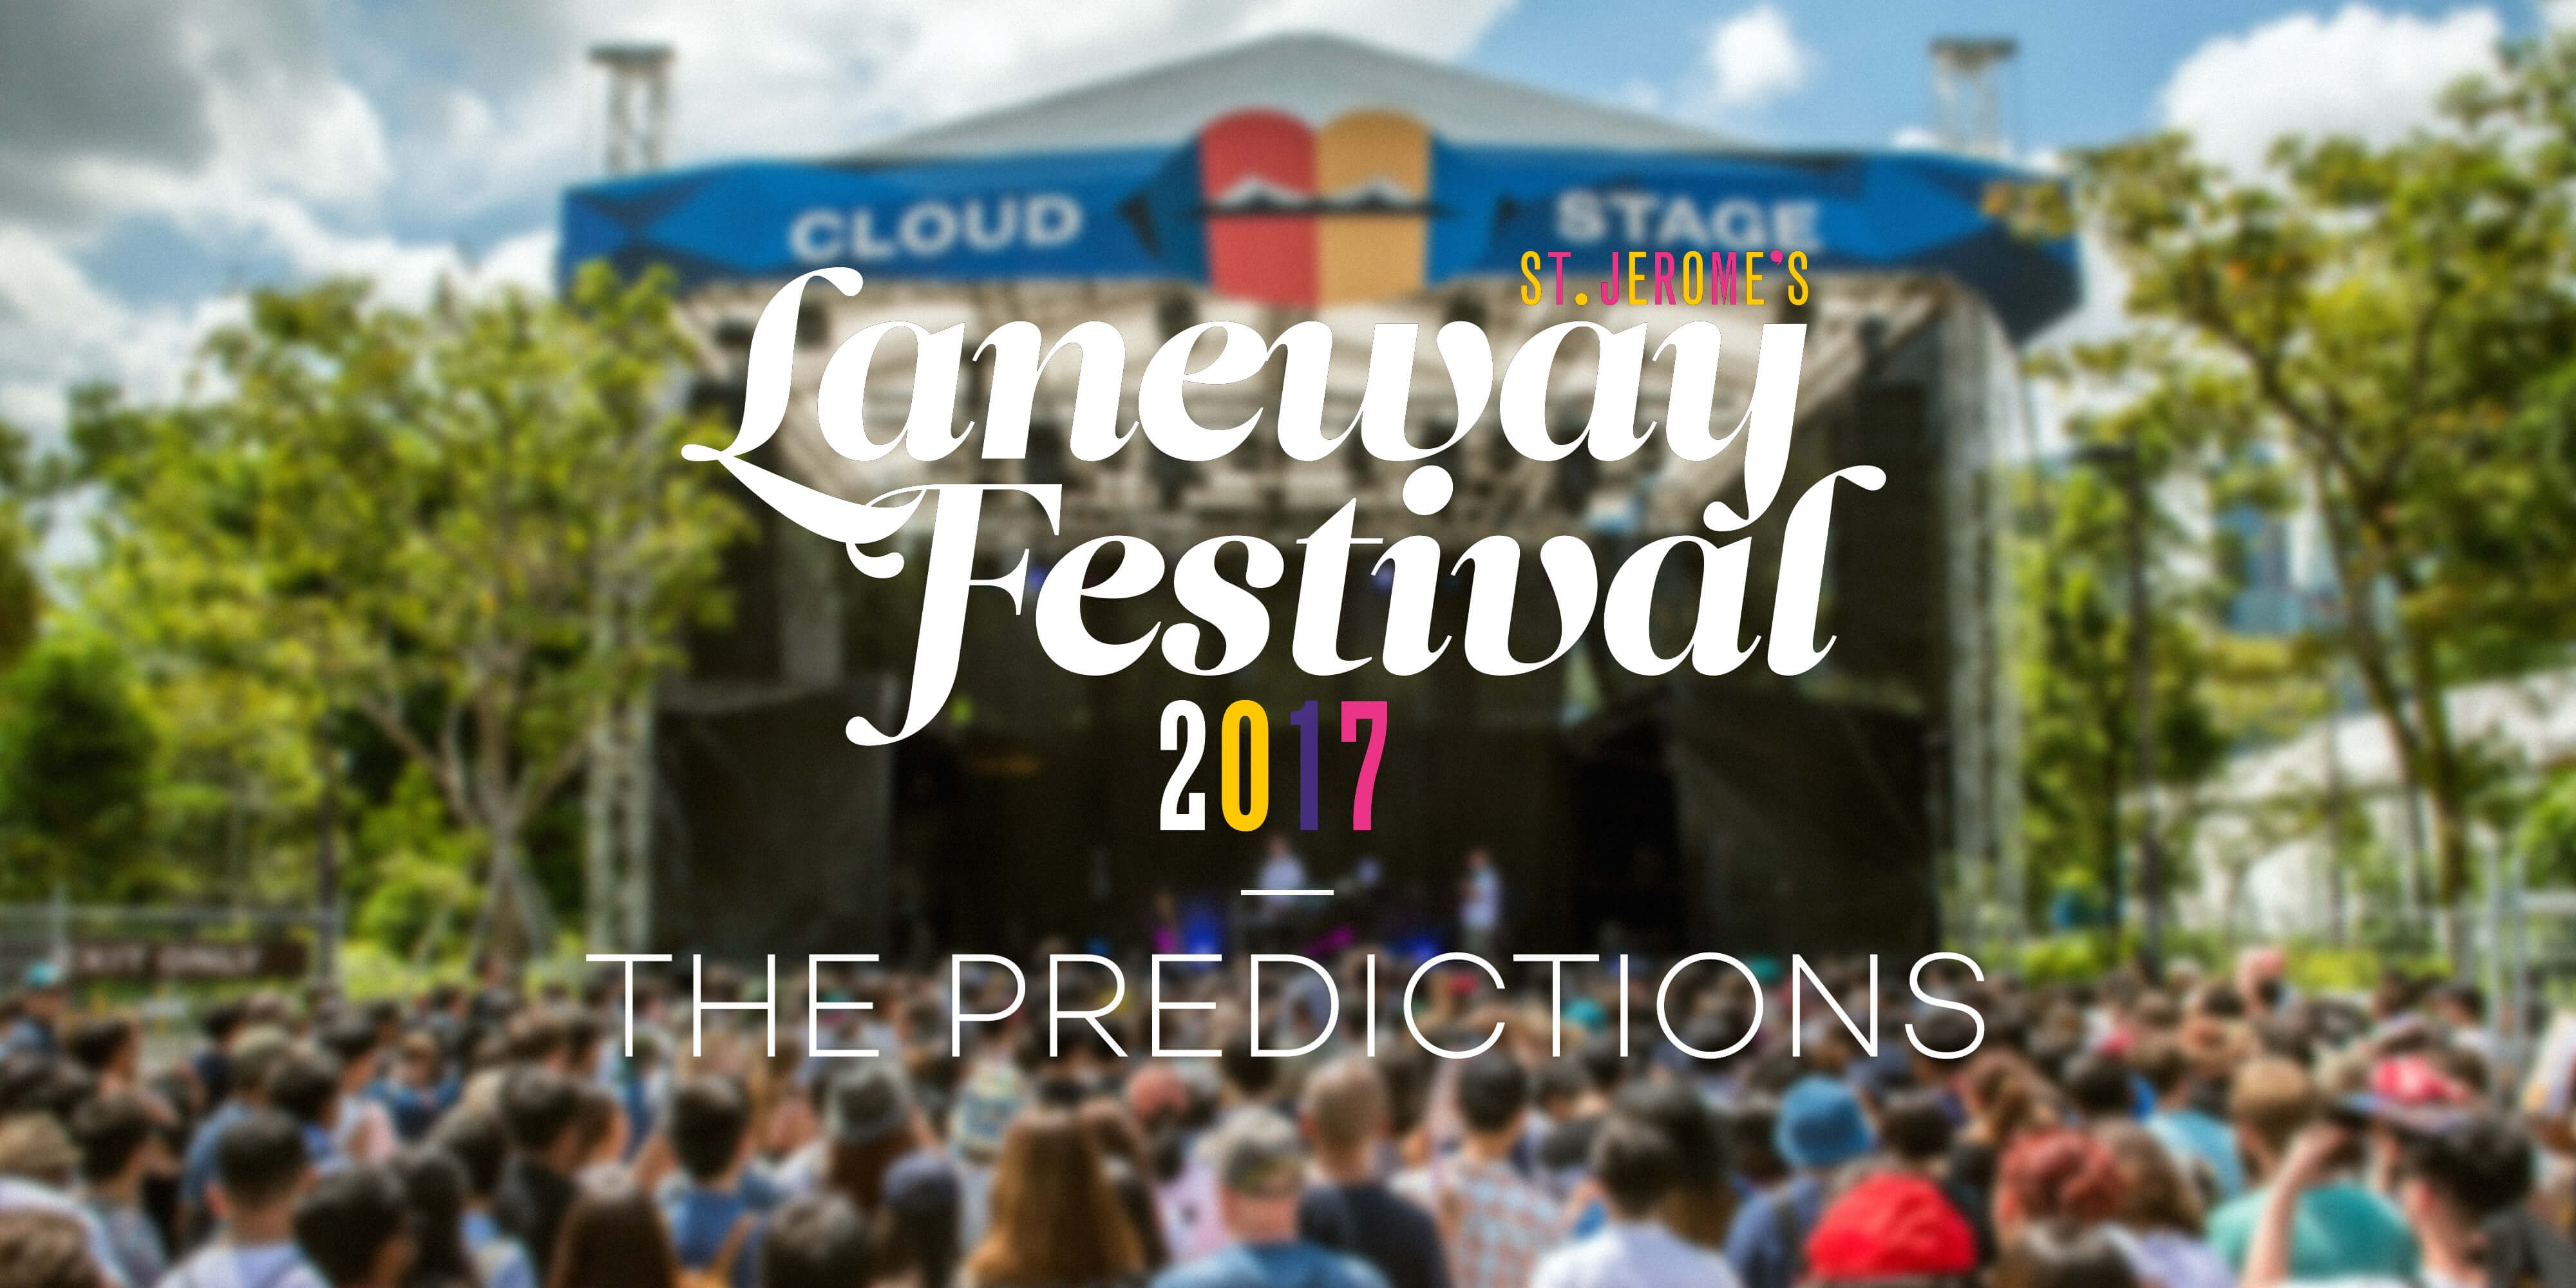 Laneway Festival SG 2017 Special: The Predictions